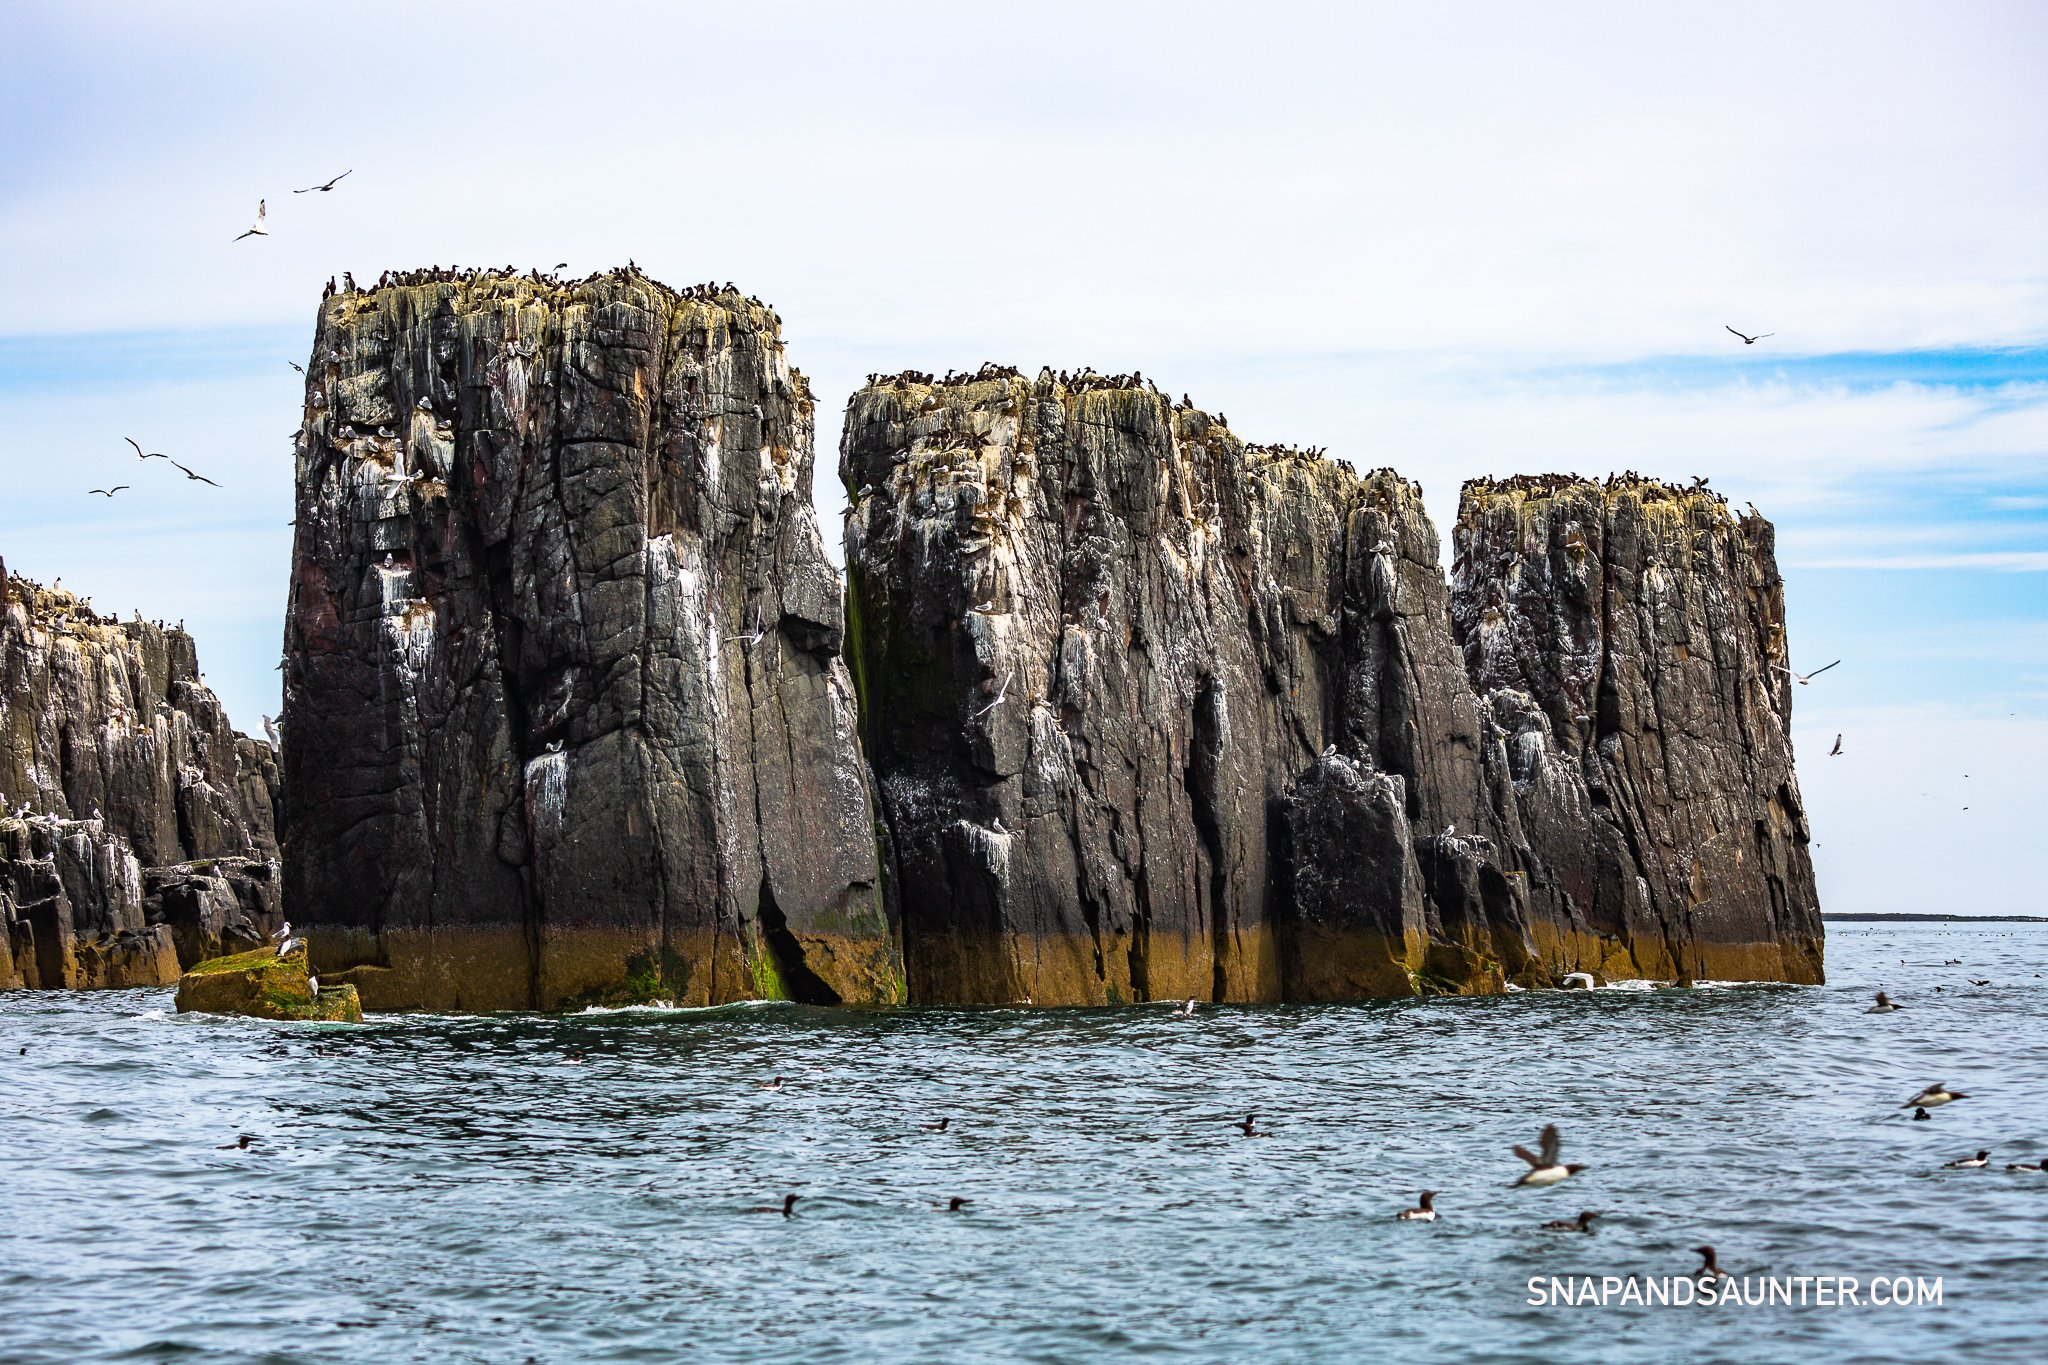 clifs with sea birds at Farne Islands